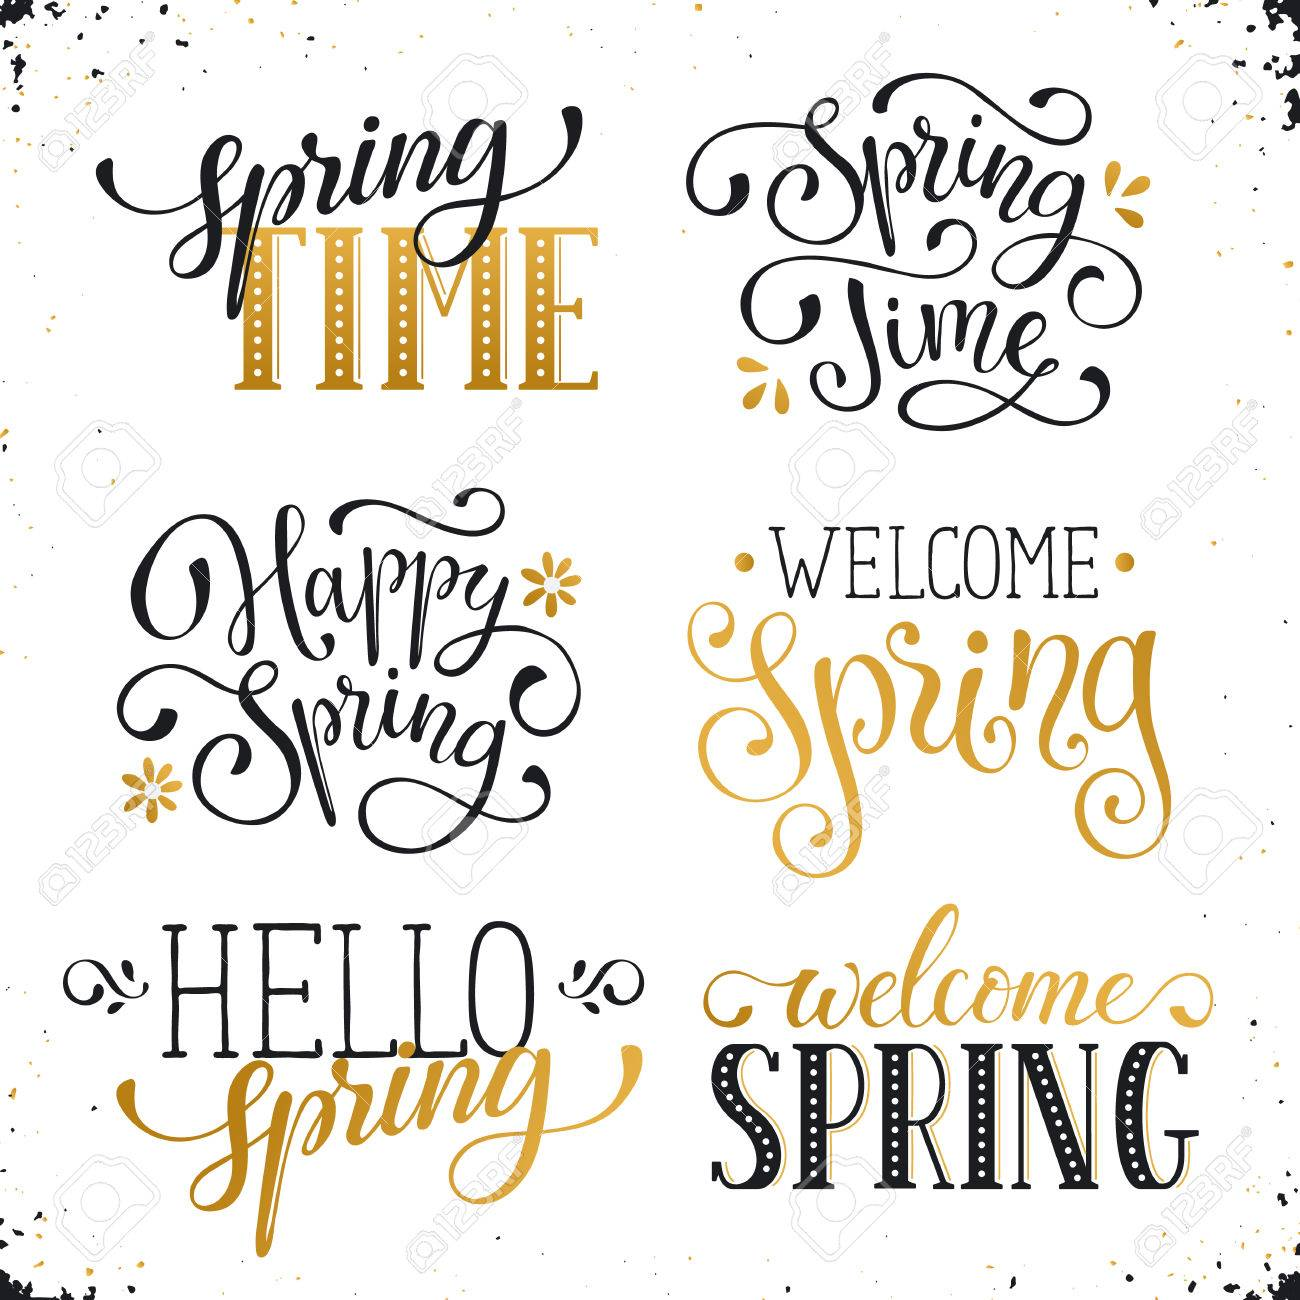 Hand written spring time phrases in white and gold greeting hand written spring time phrases in white and gold greeting card text templates isolated on m4hsunfo